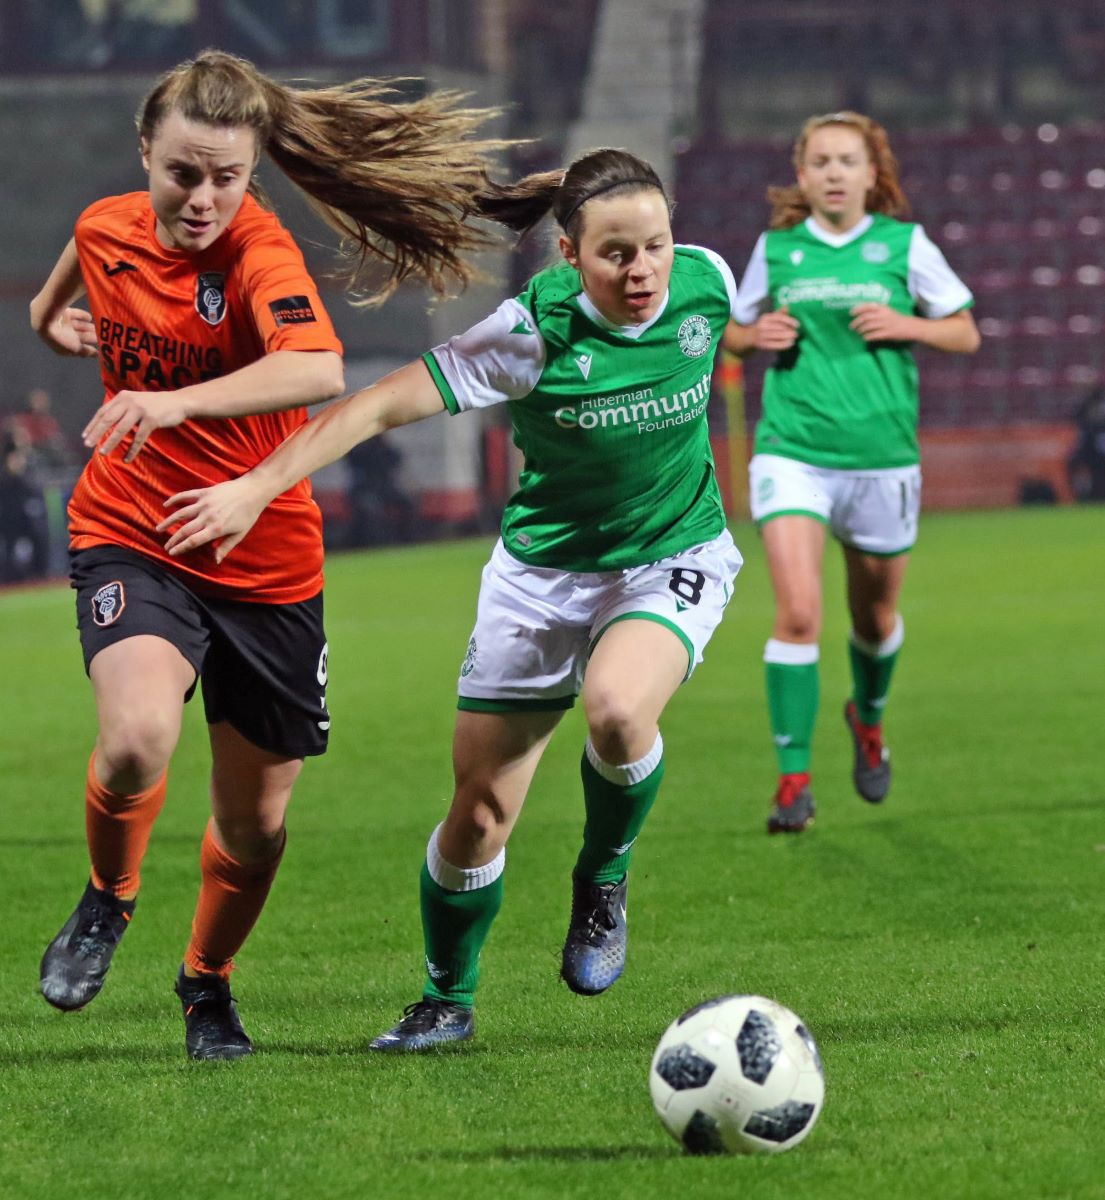 Glasgow City;s new signing Cailin Michie